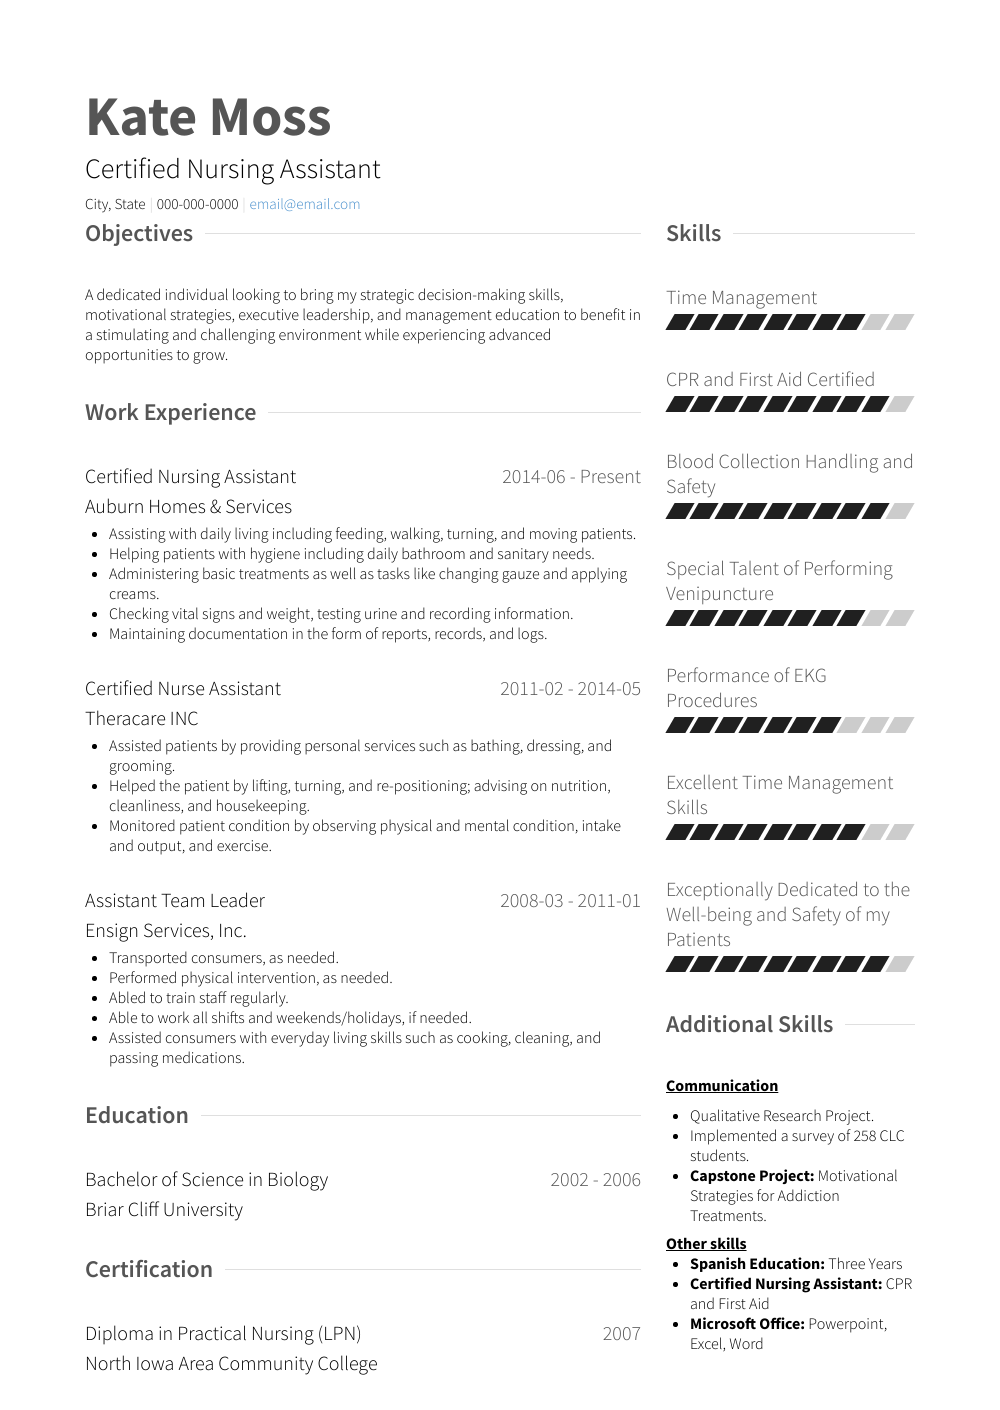 Certified Nursing Assistant Resume Sample and Template